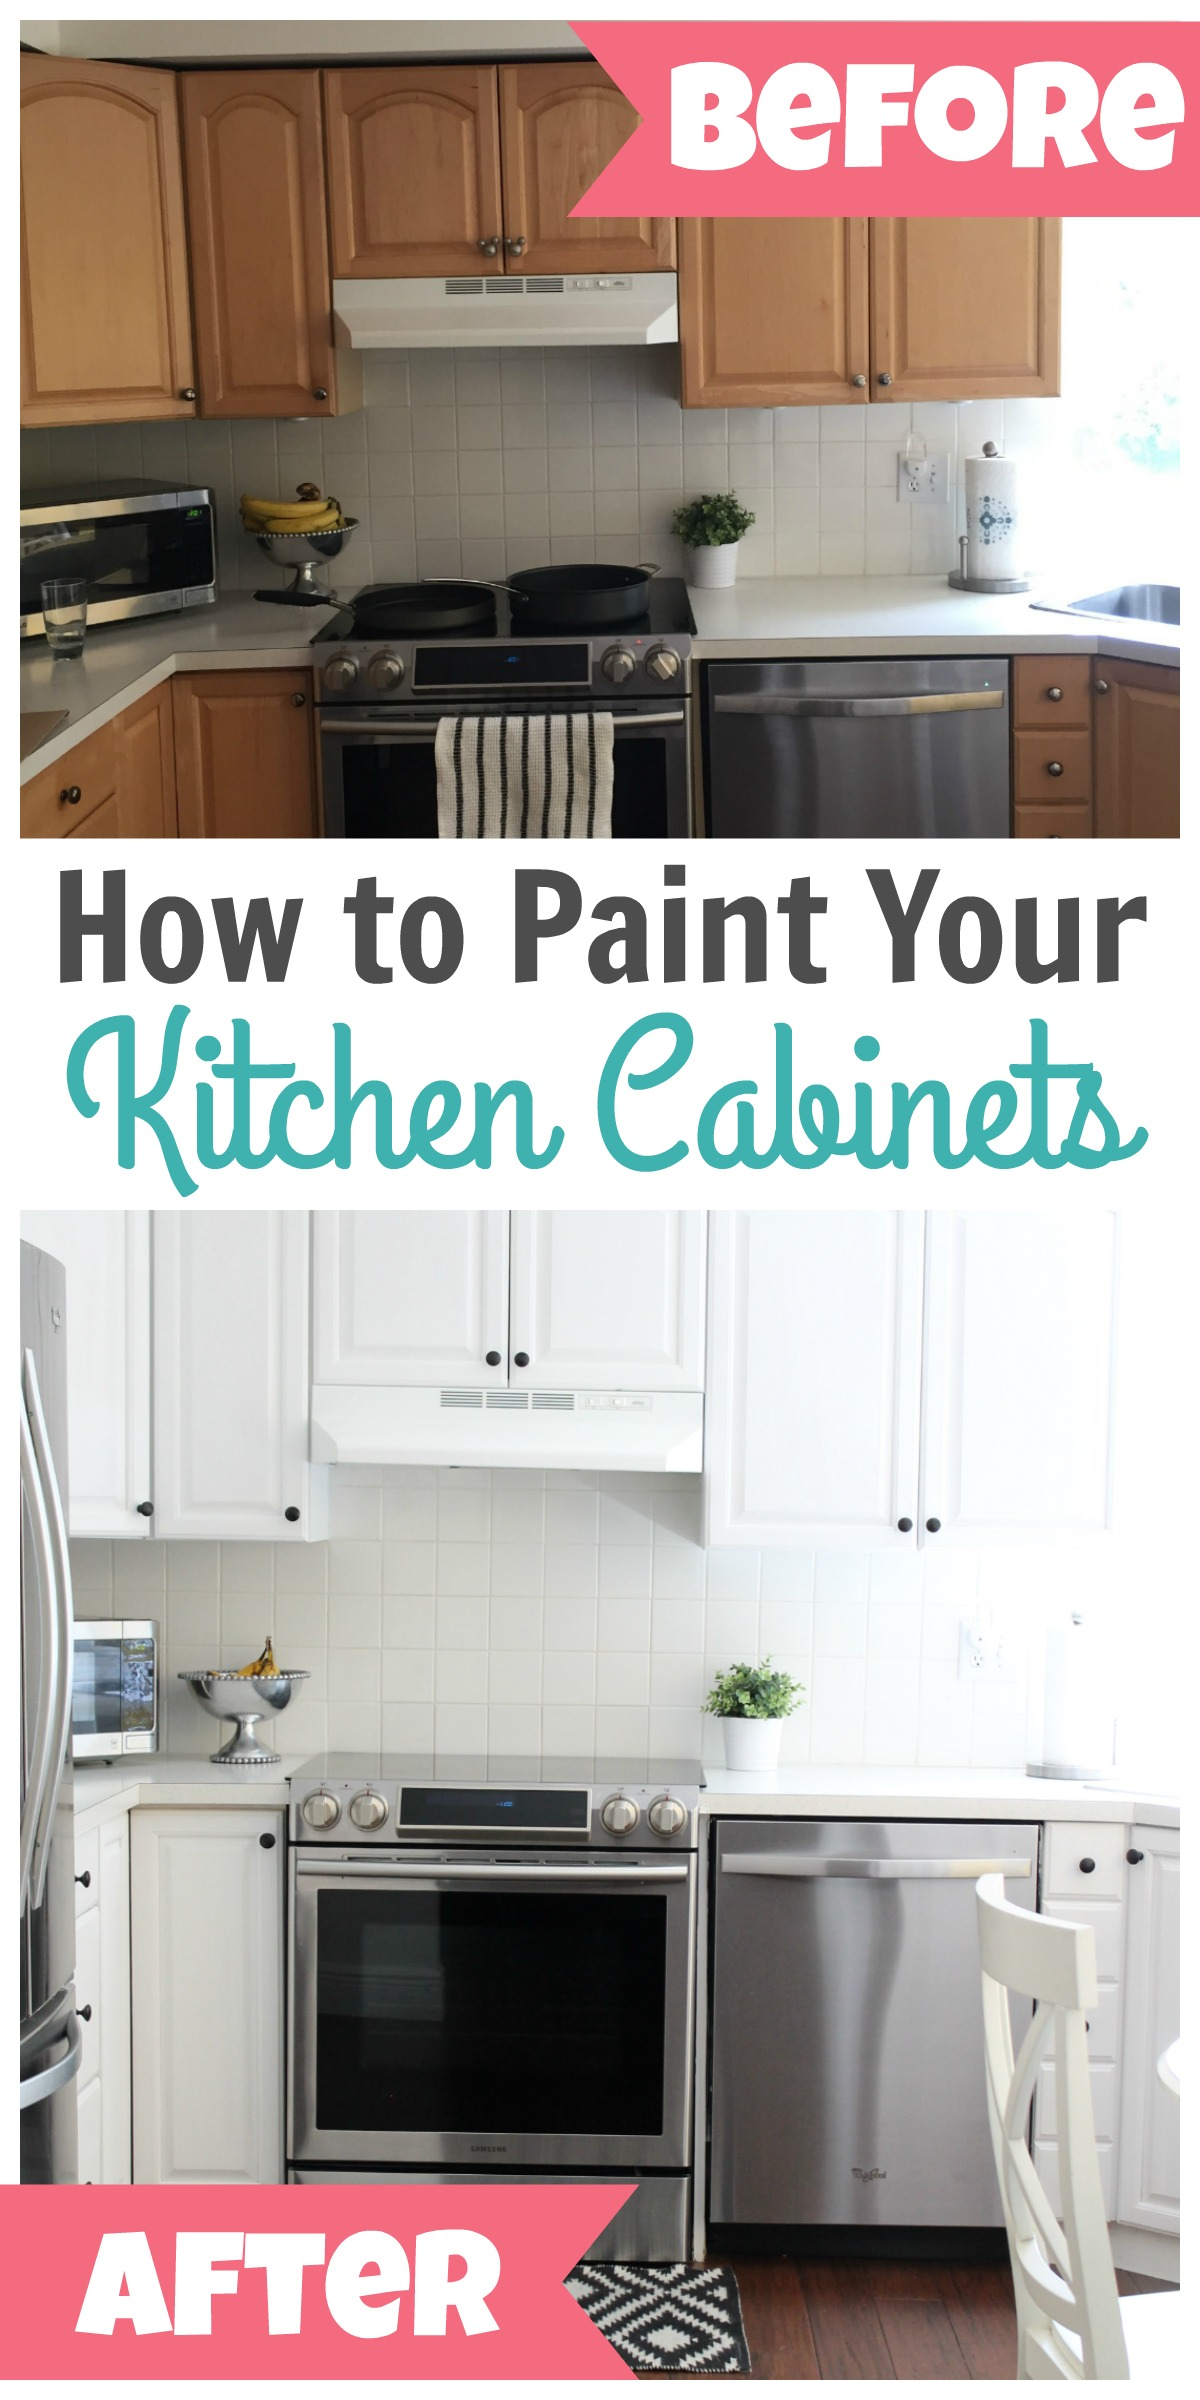 Painting Kitchen Cabinets Estimate Beautiful Home Depot Cabinet Paint Kit Insured By Ross